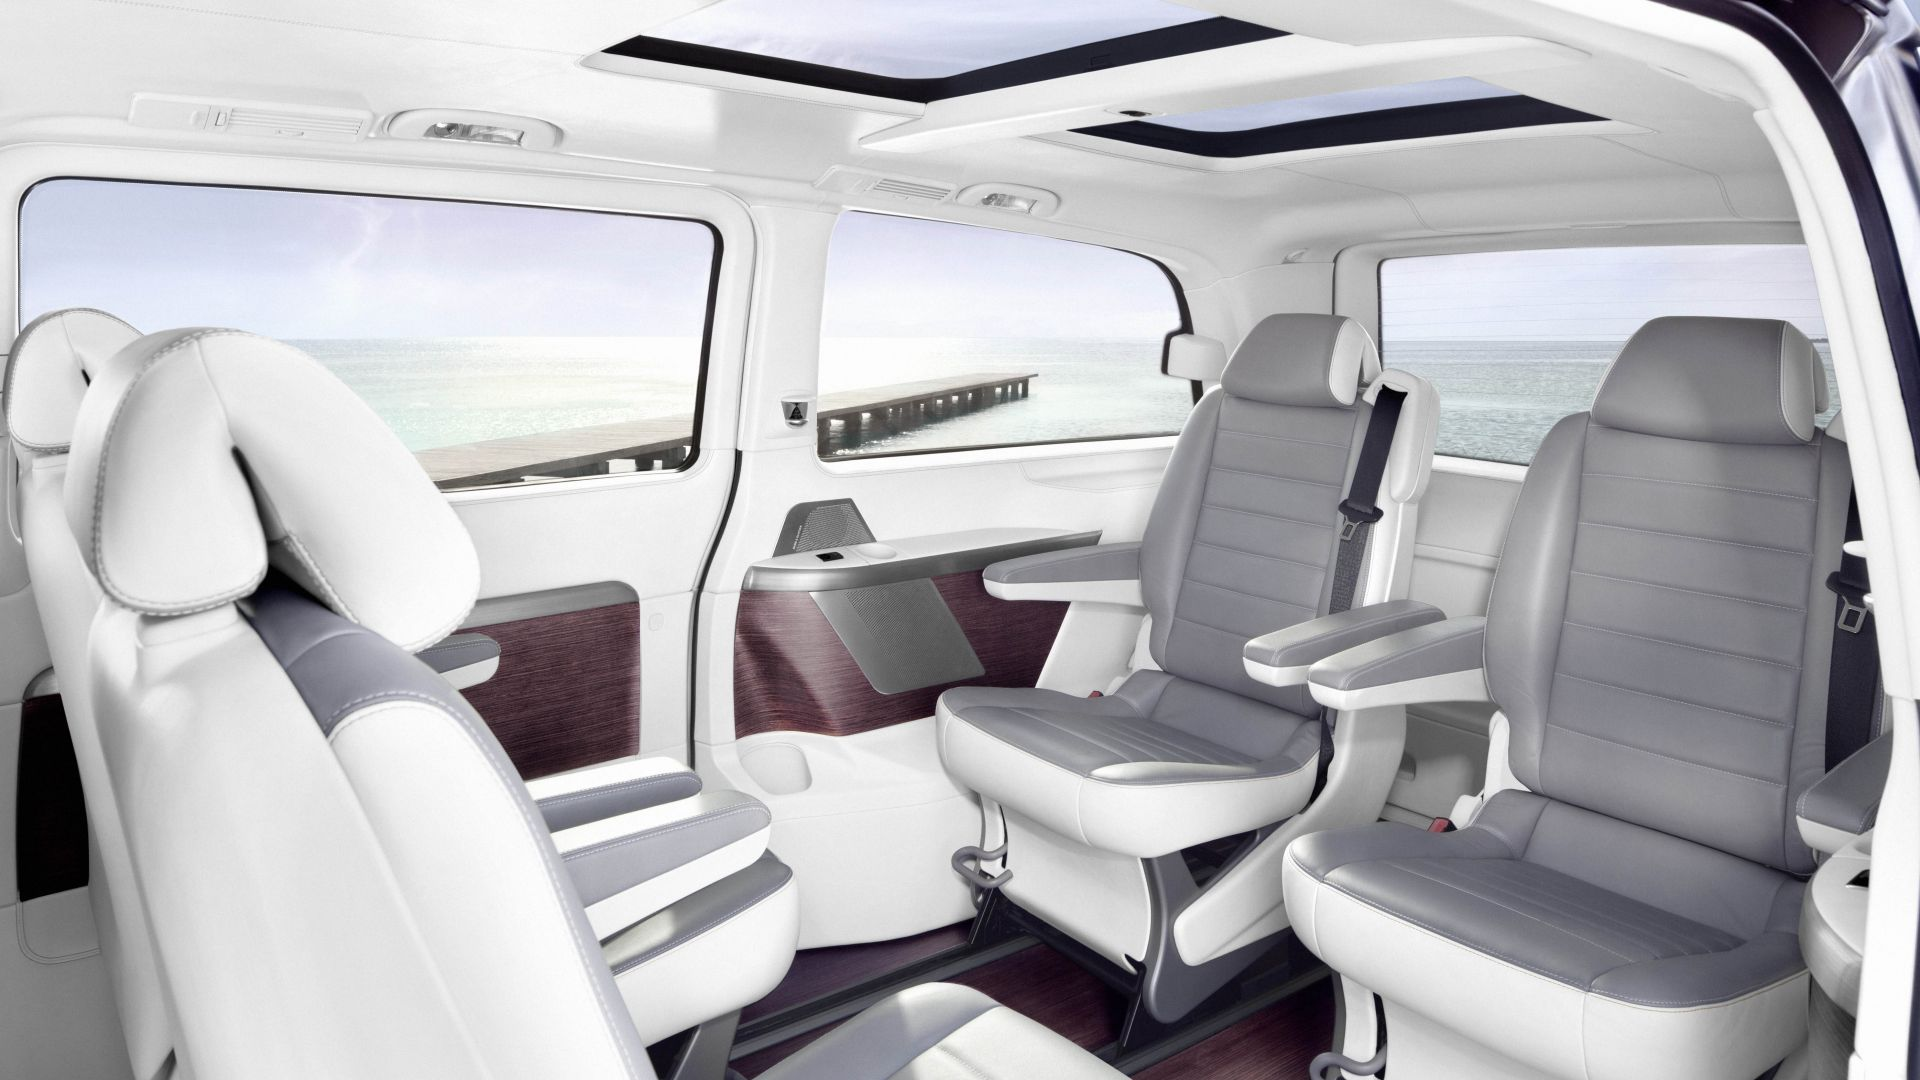 Mercedes-Benz Sprinter Vision Van, electric car, interior, 5k (horizontal)